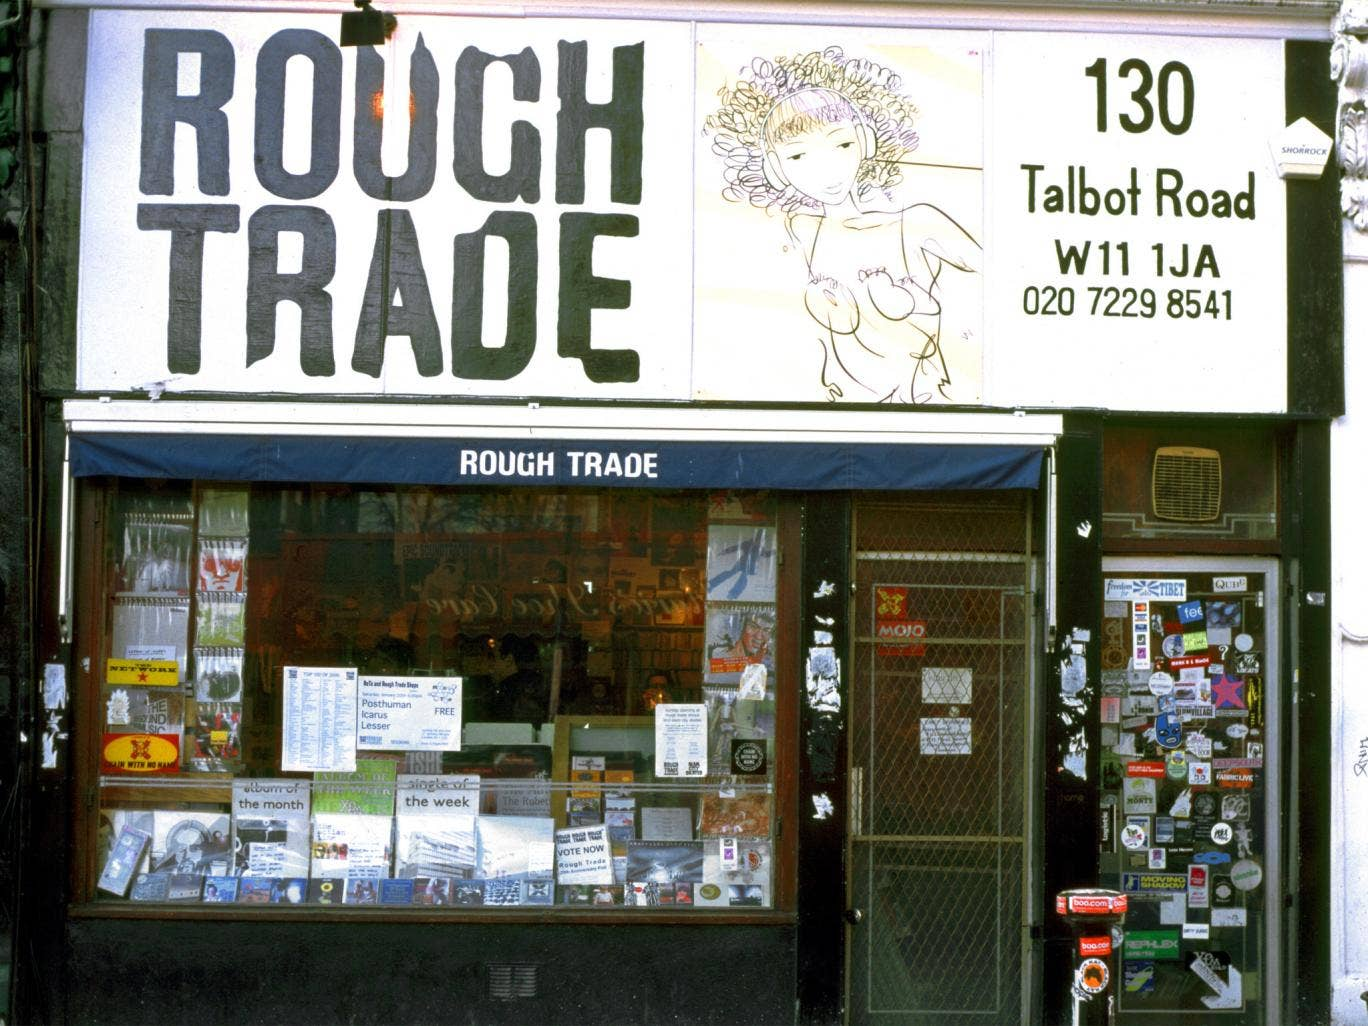 The Rough Trade store on Tolbert Road, west London